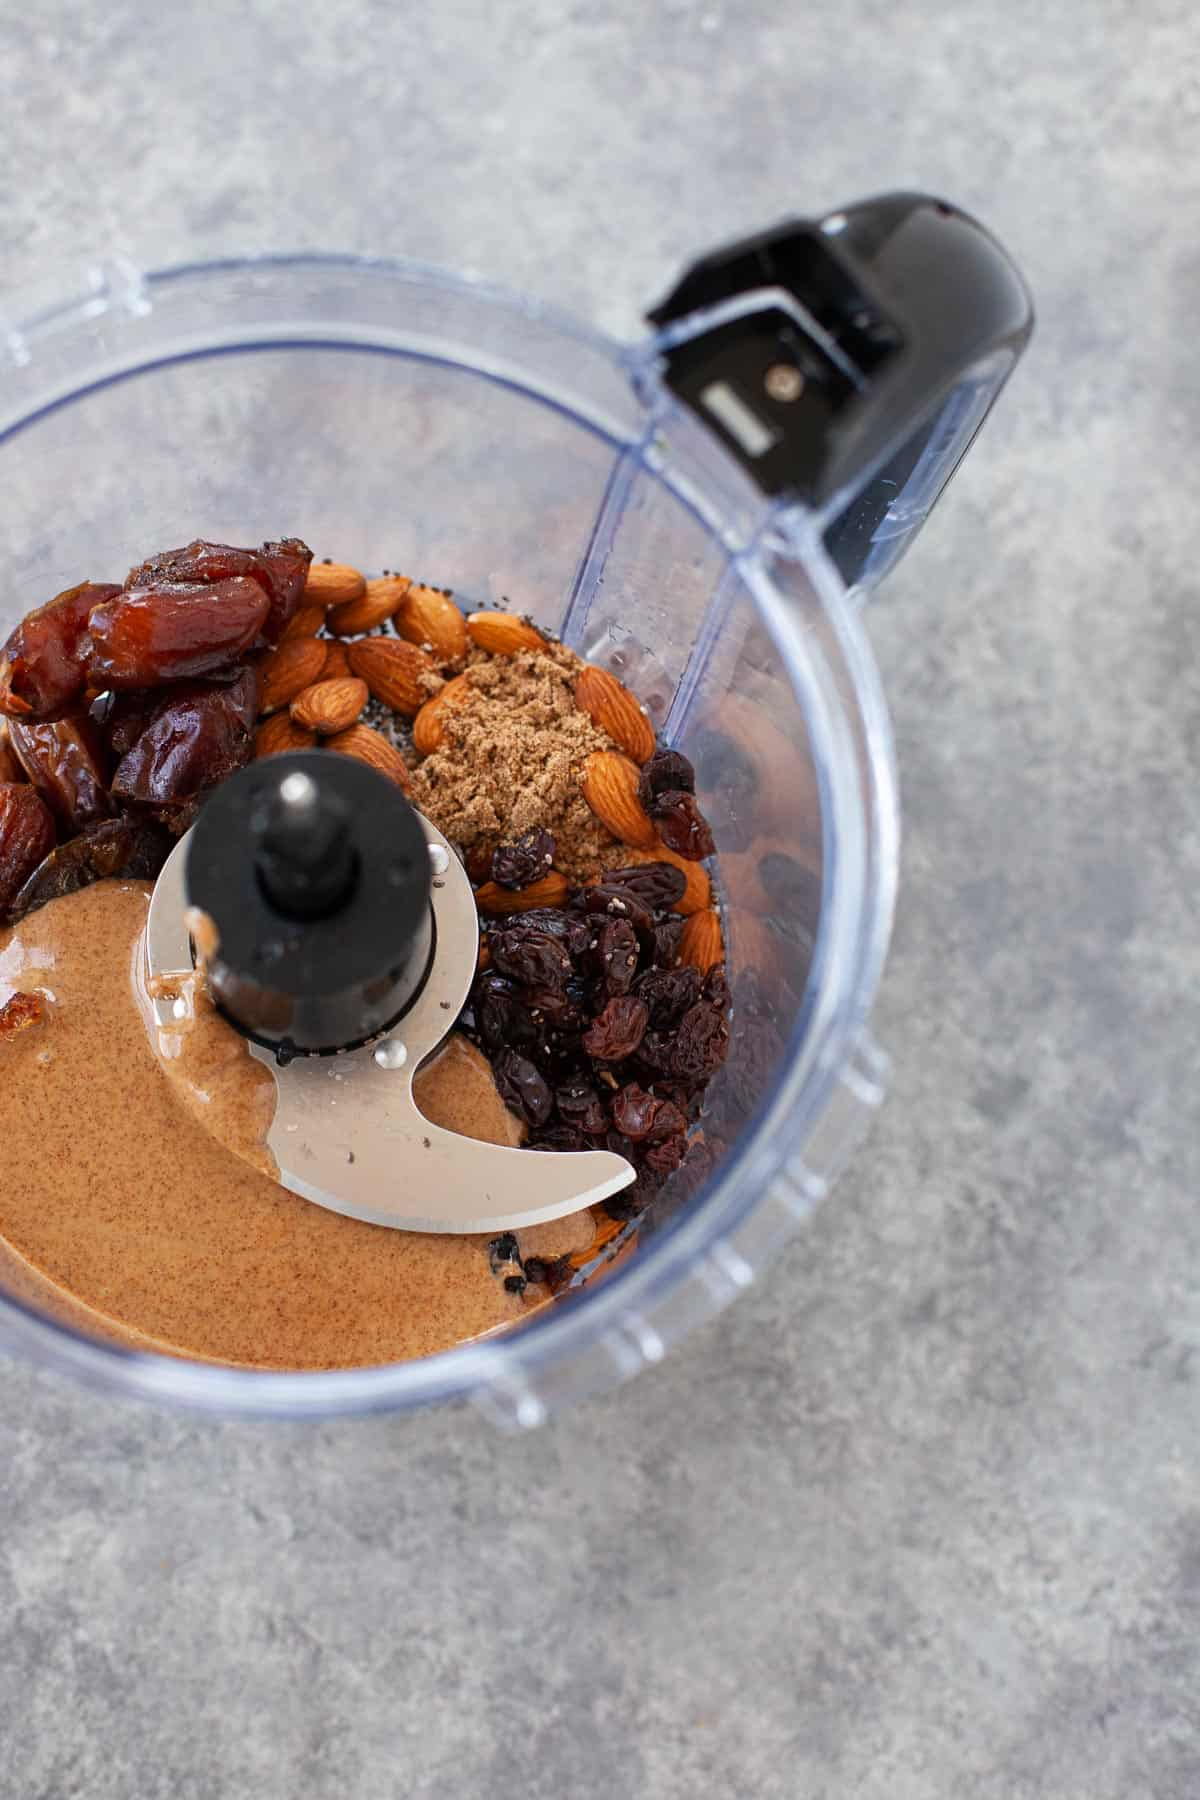 almond butter, raisins, almonds, and dates in a food processor